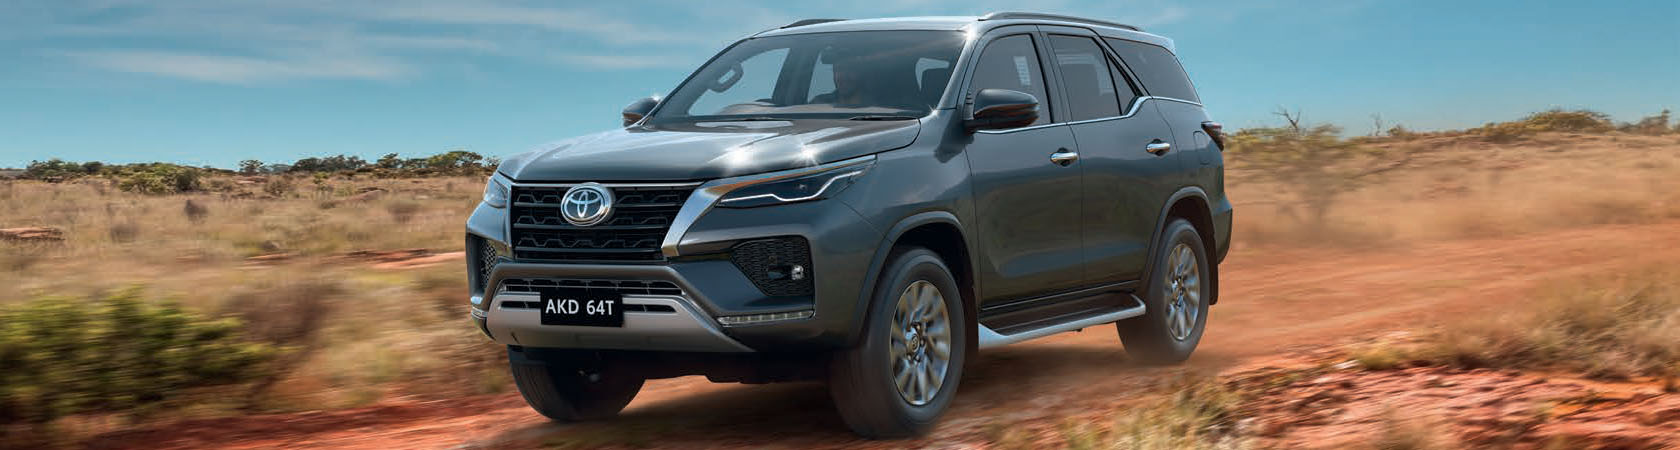 Macquarie Toyota RAV4